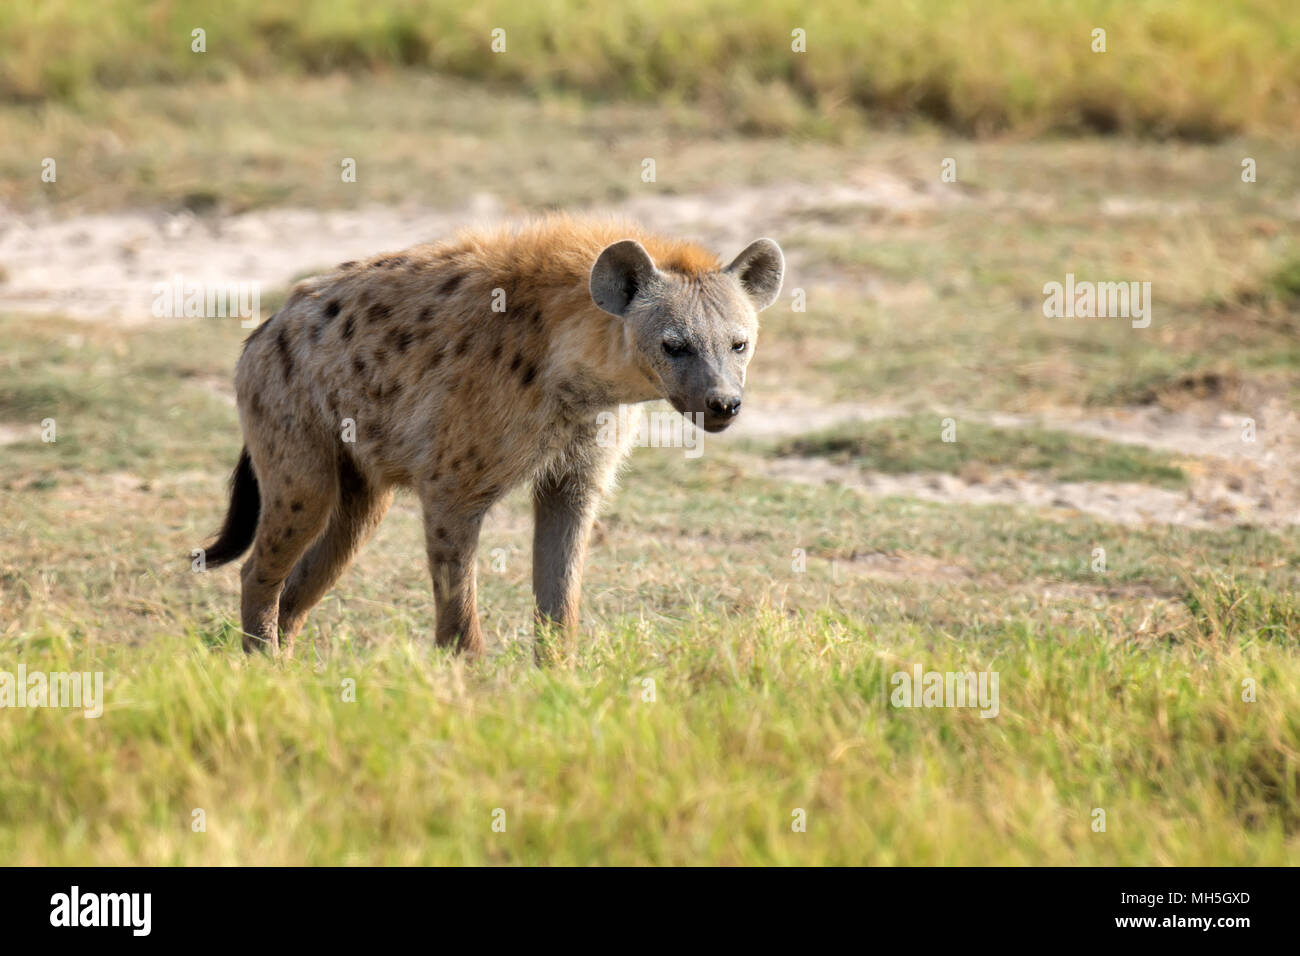 Spotted Hyena (Crocuta crocuta) in the National park of Kenya - Stock Image